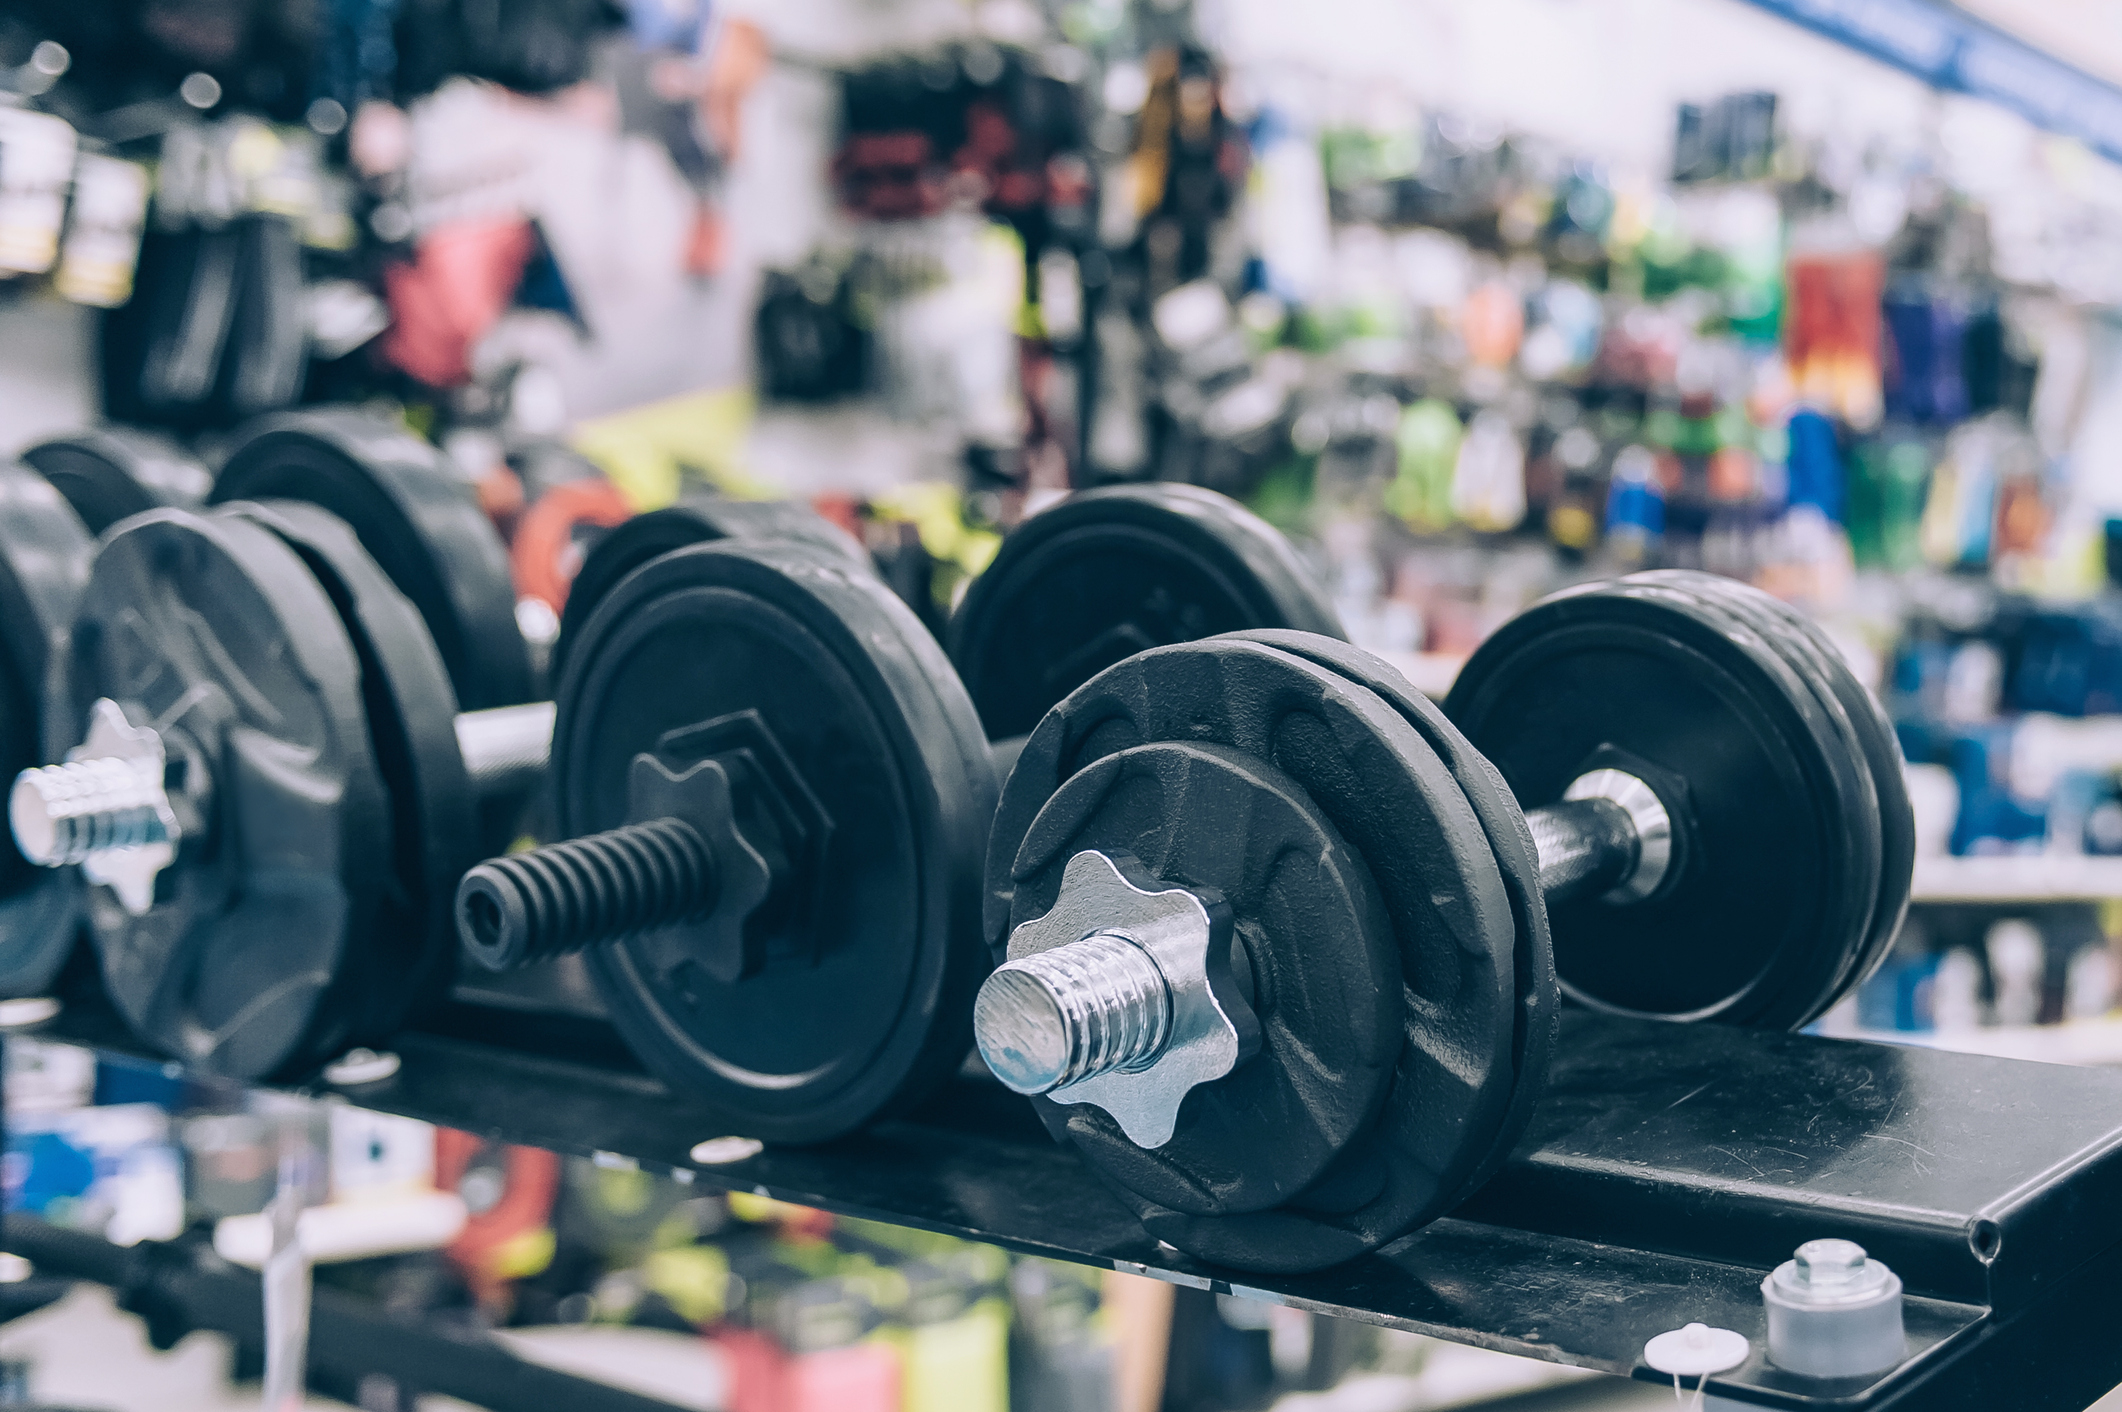 The guy holds a dumbbell in his hands at the sports store on the background of accessories for fitness